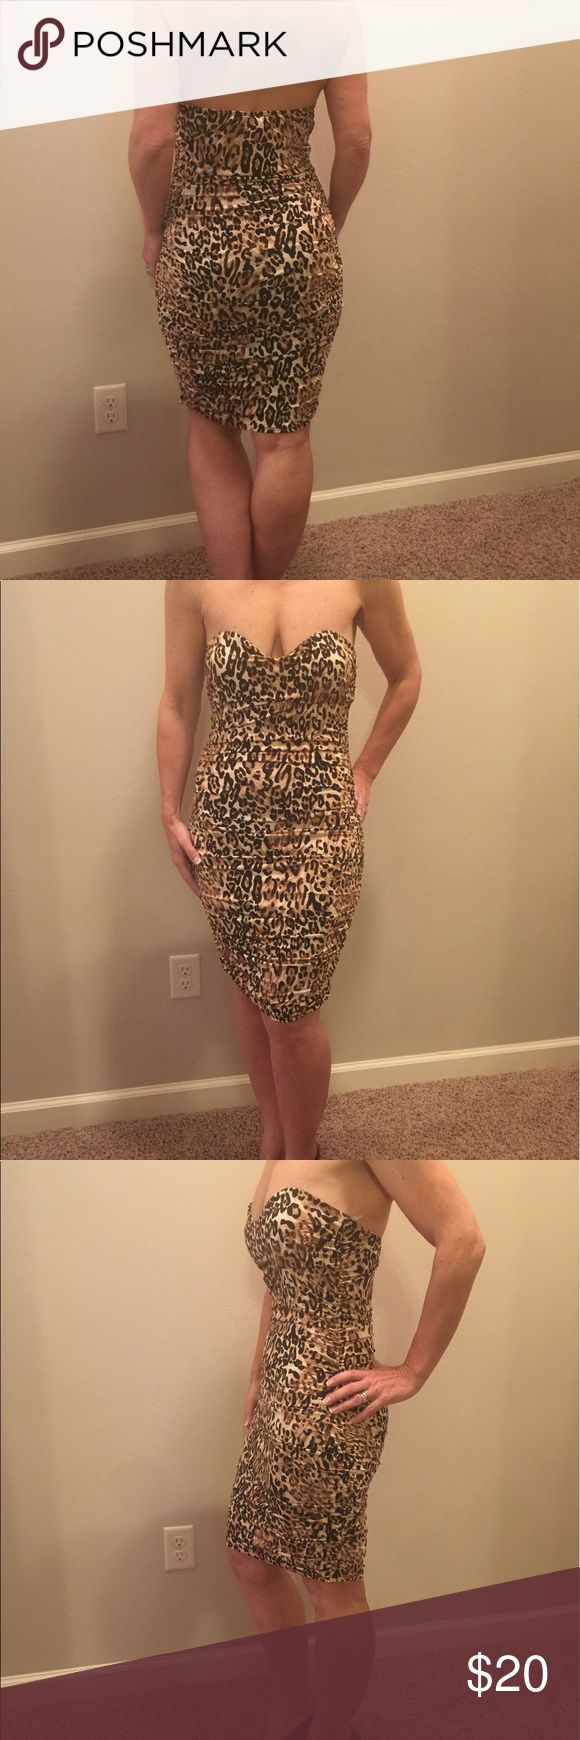 Animal print dress This dress is an eye catcher!!! Can you guess why I am selling it!!?? Not enough (@)(@) to hold her up!!☺️ this wild cat needs a night out on the town!! PUSH THE BUTTON and I will ship her right to you!!! Cristina Dresses Strapless